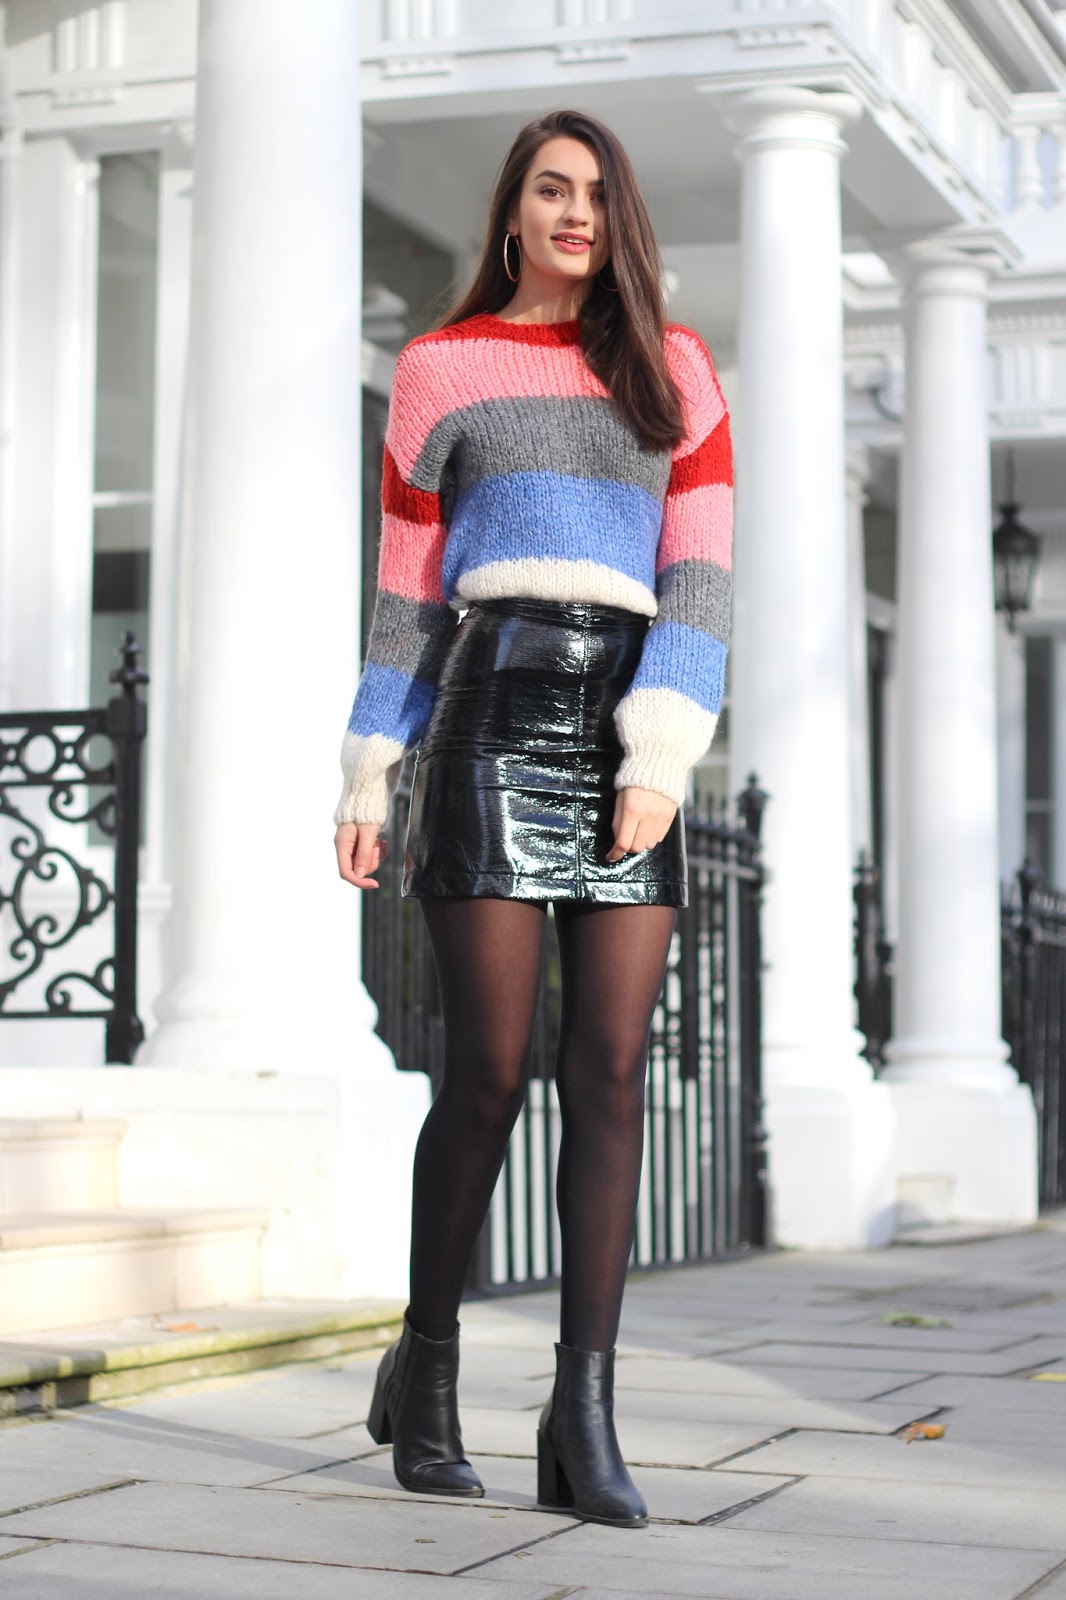 fashion blog london peexo personal style stripes vinyl